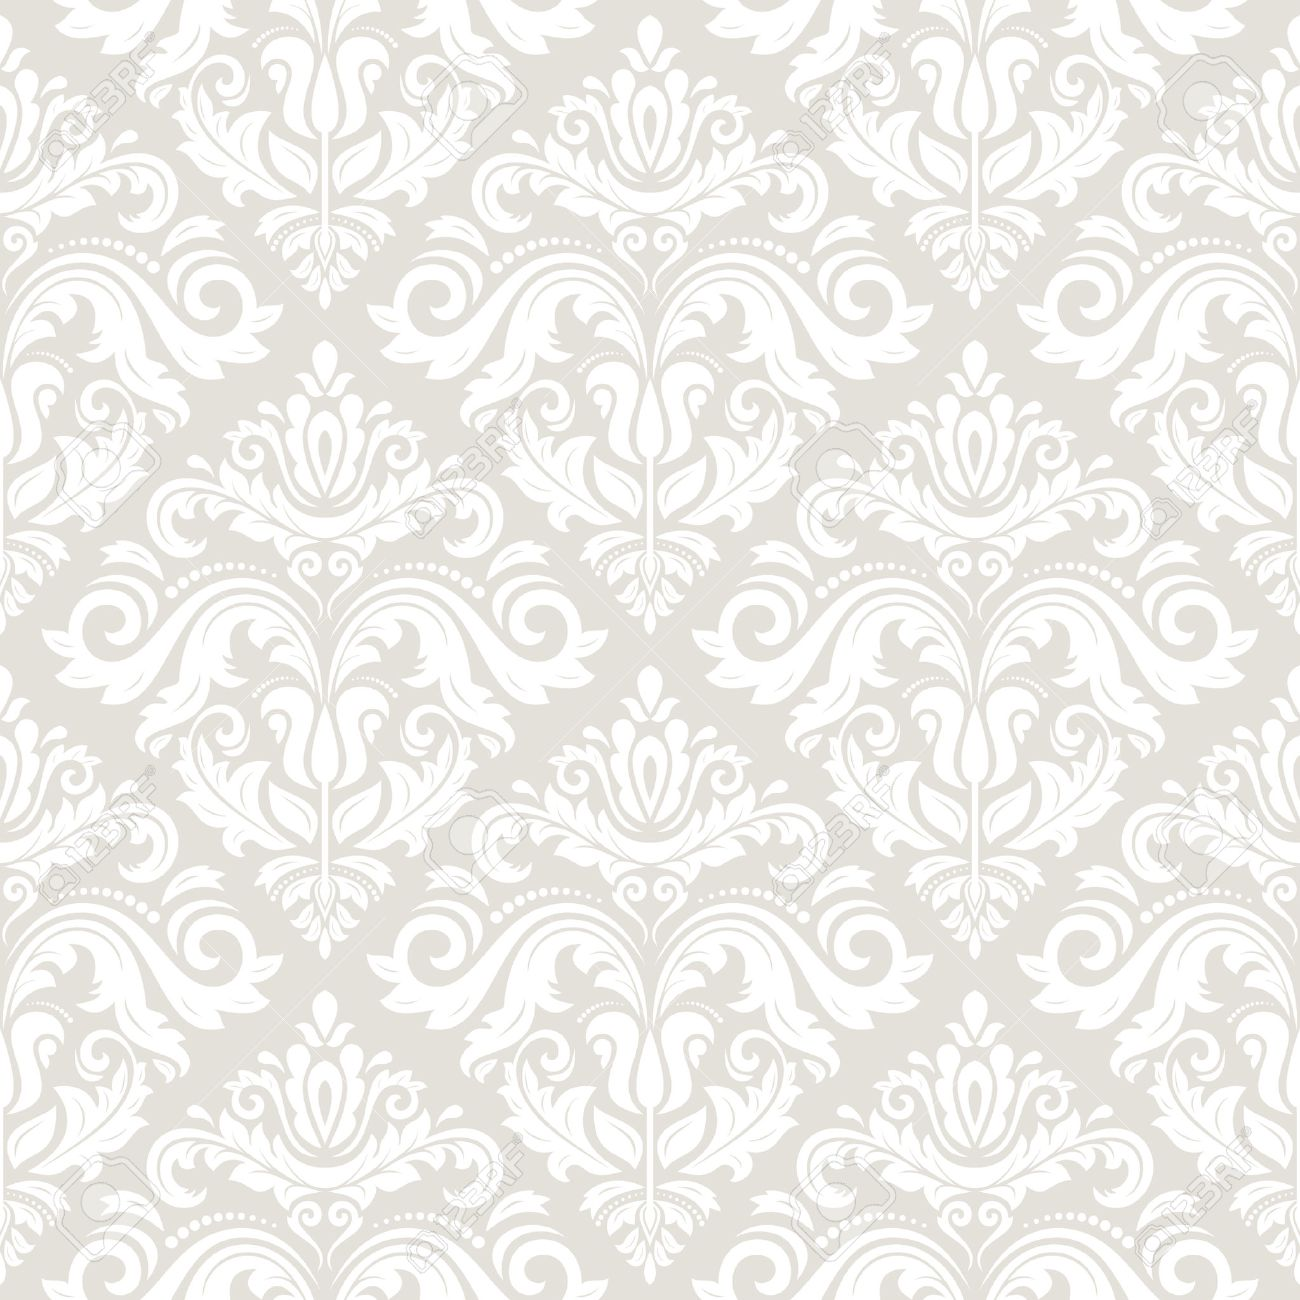 Wallpaper in the style of Baroque. Seamless vector background. Light damask floral pattern with orient and floral elements - 35318508